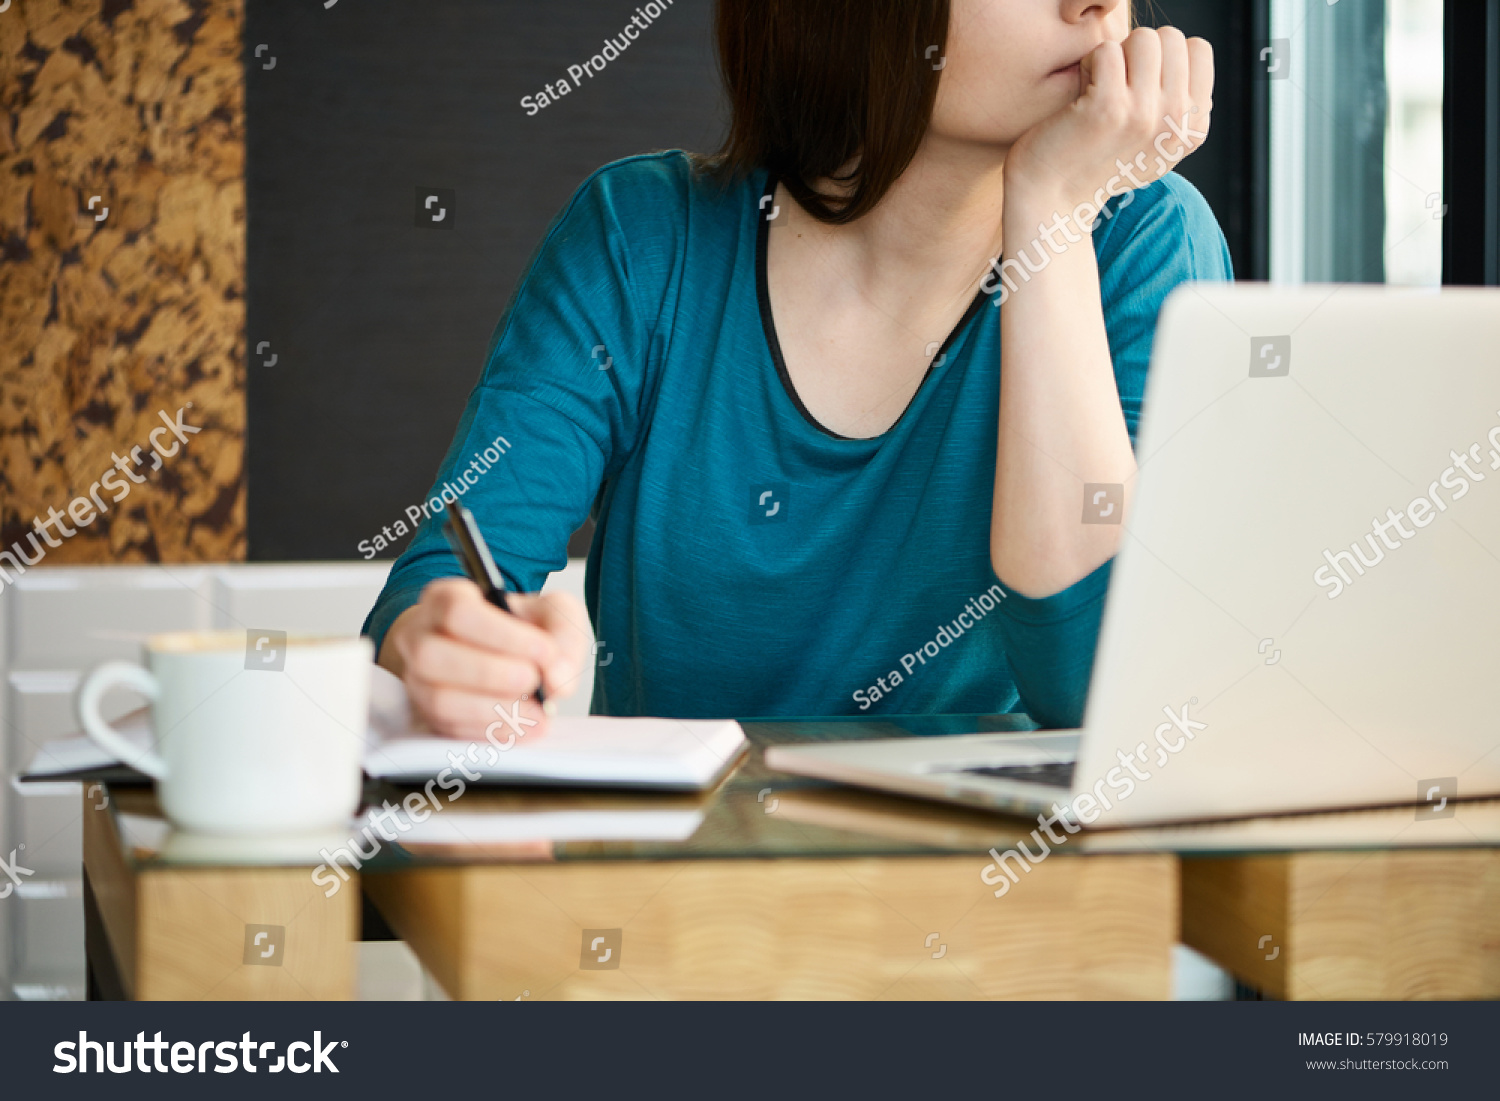 girl in the cafe essay In most cases, students enjoy writing compare and contrast essay as it isn't a boring activity as provides an opportunity to use the imagination.